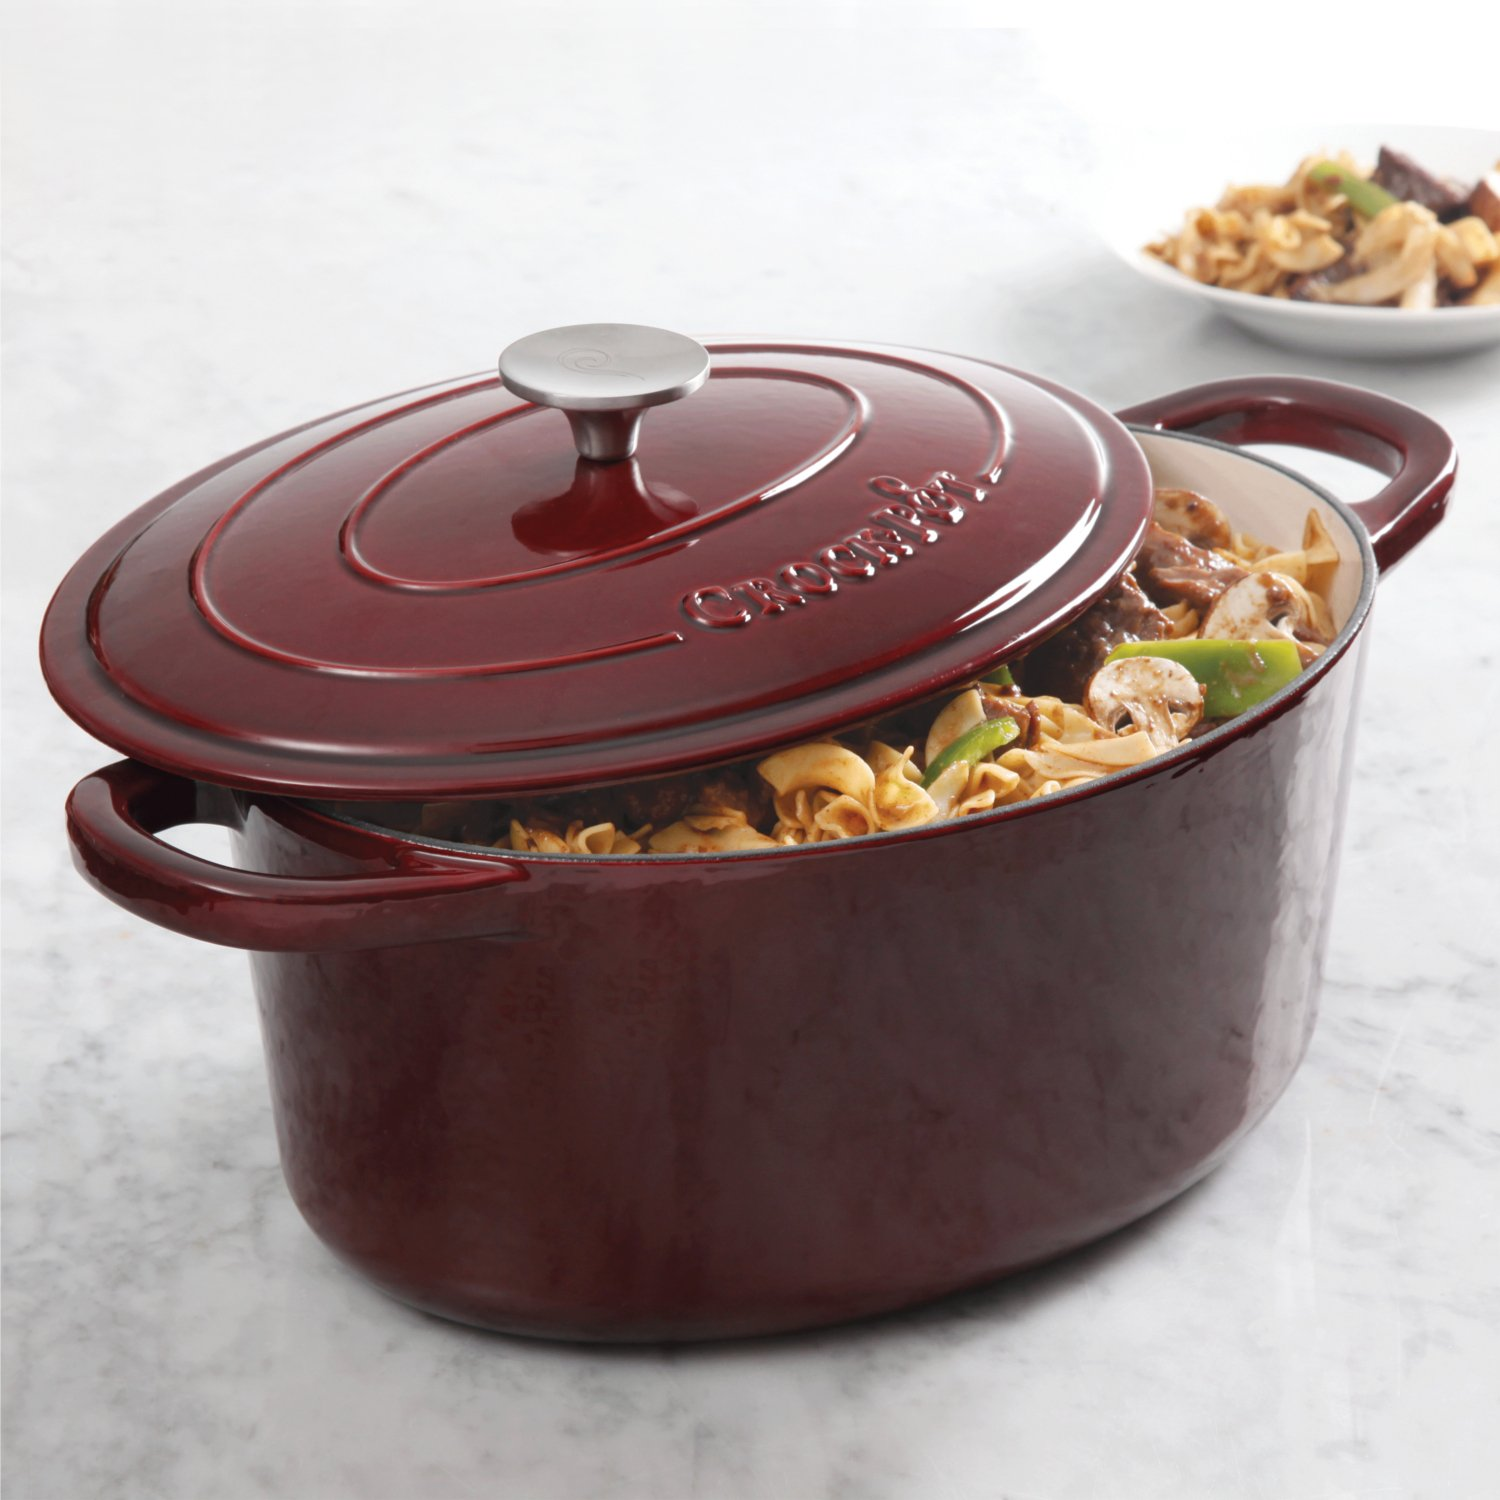 Crock Pot Artisan 7QT Oval Dutch Oven, Burgundy